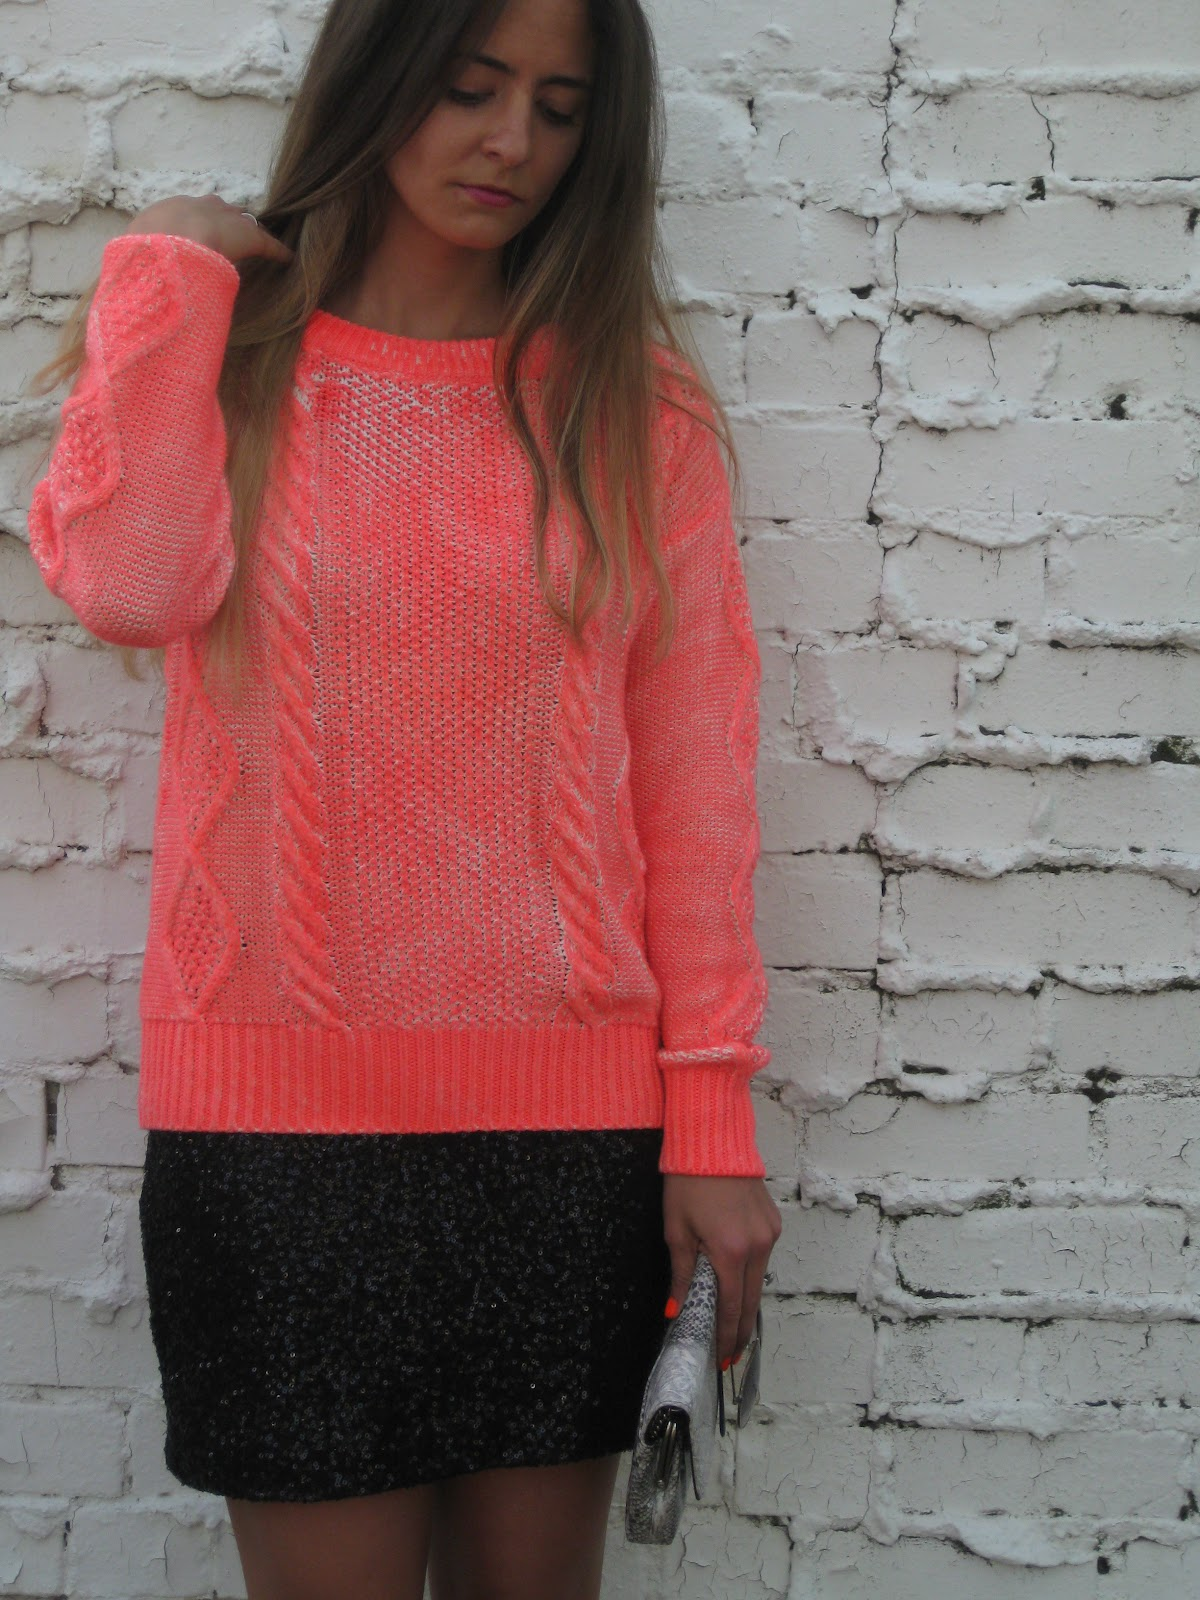 Bedazzles After Dark: Outfit Post: Casual   Dressy = Neon Sparkles